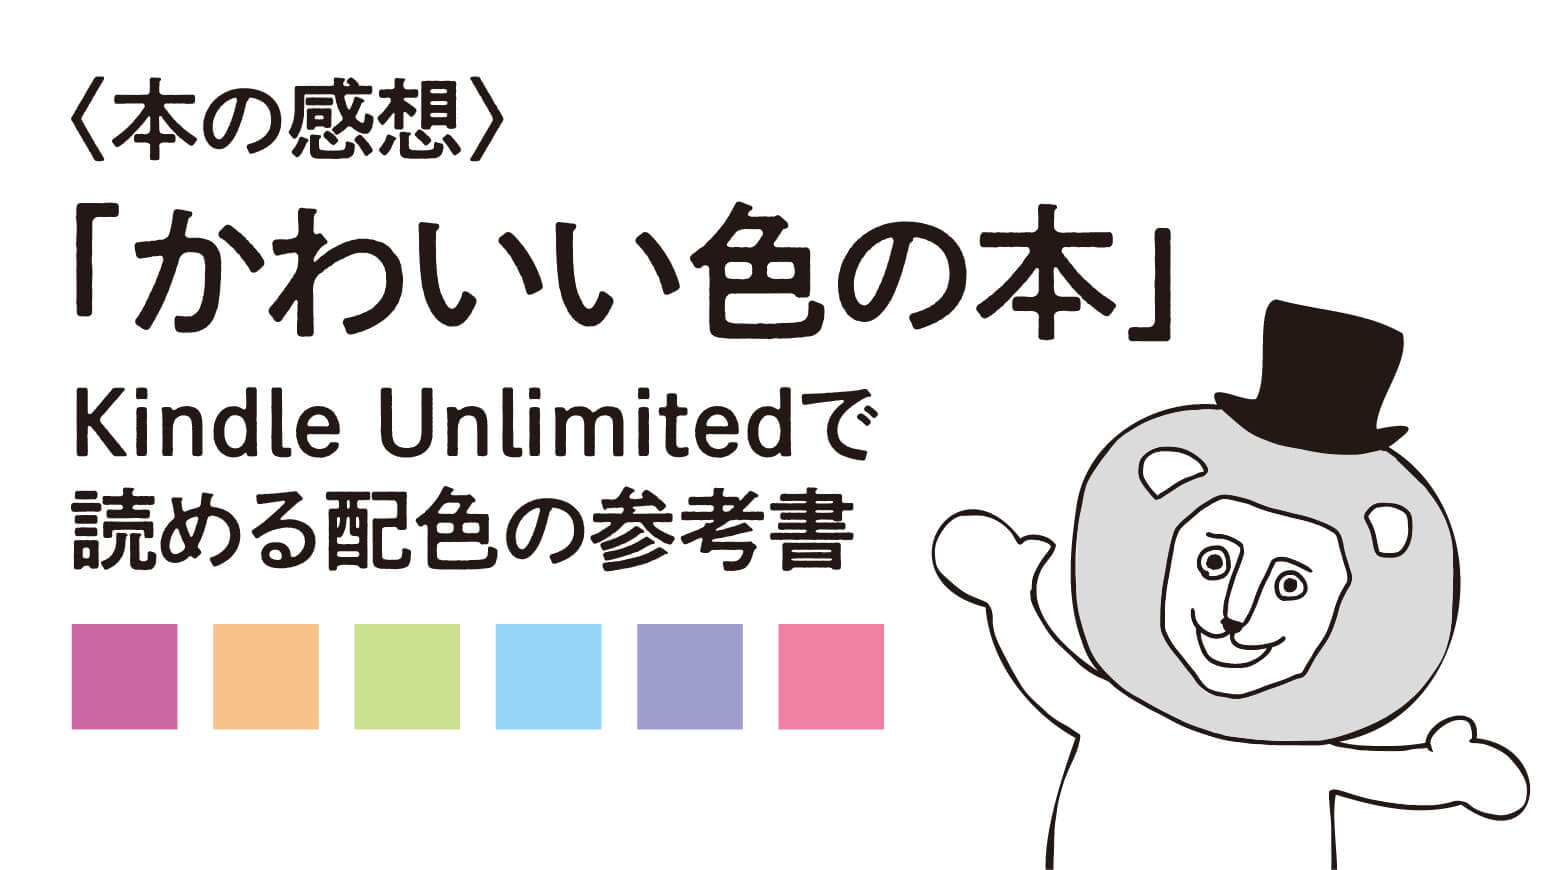 Kindle Unlimitedで読める可愛い配色の参考書